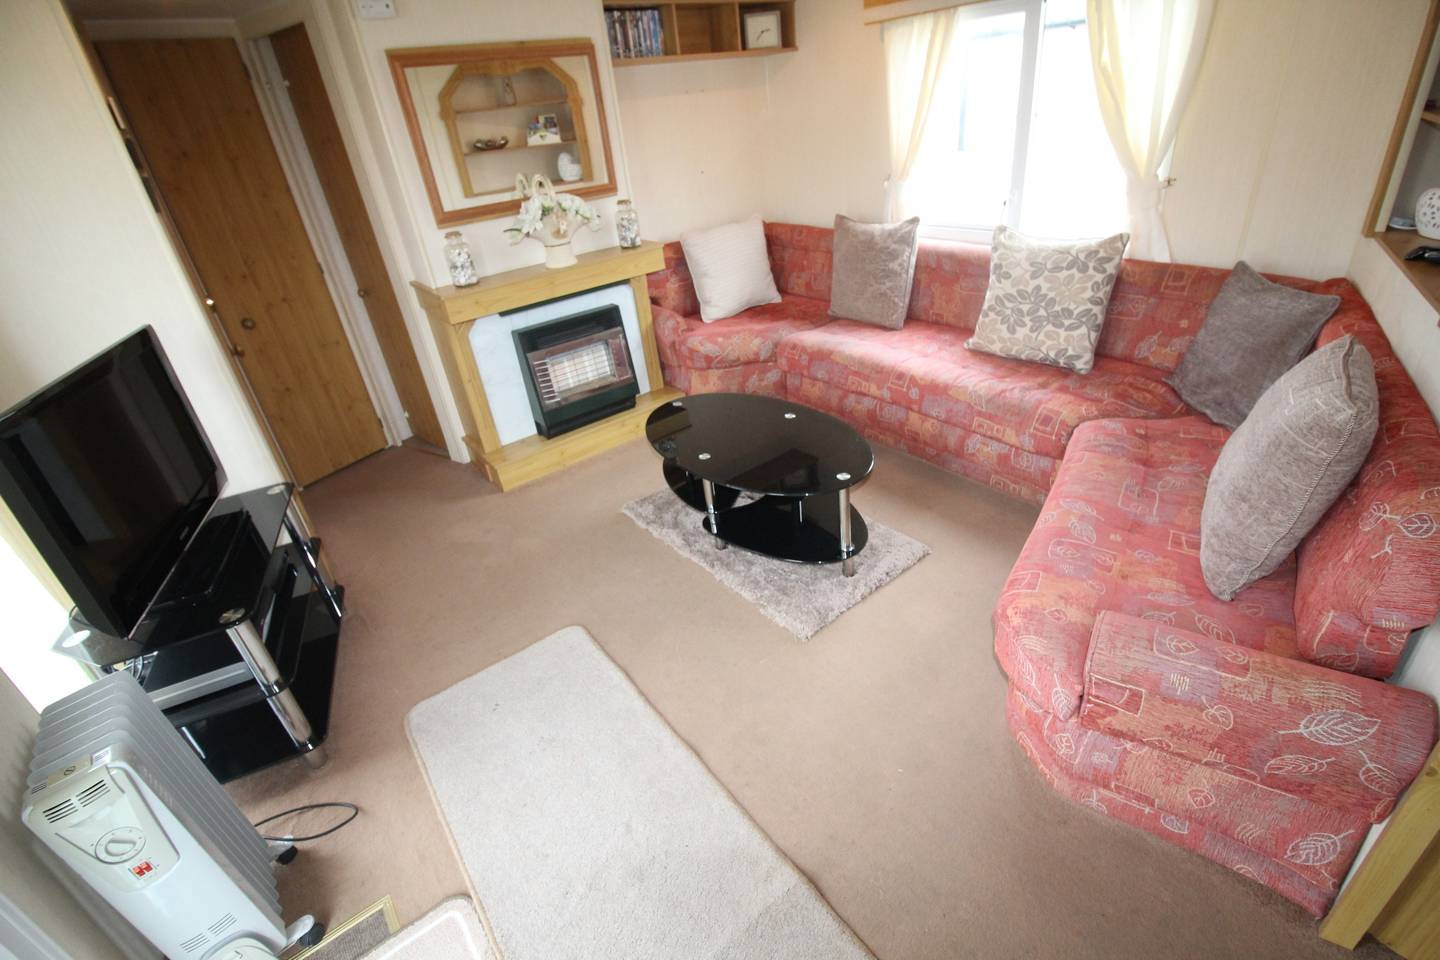 Apartment 3 Bed Caravan  Reighton Sands  Filey photo 18766351